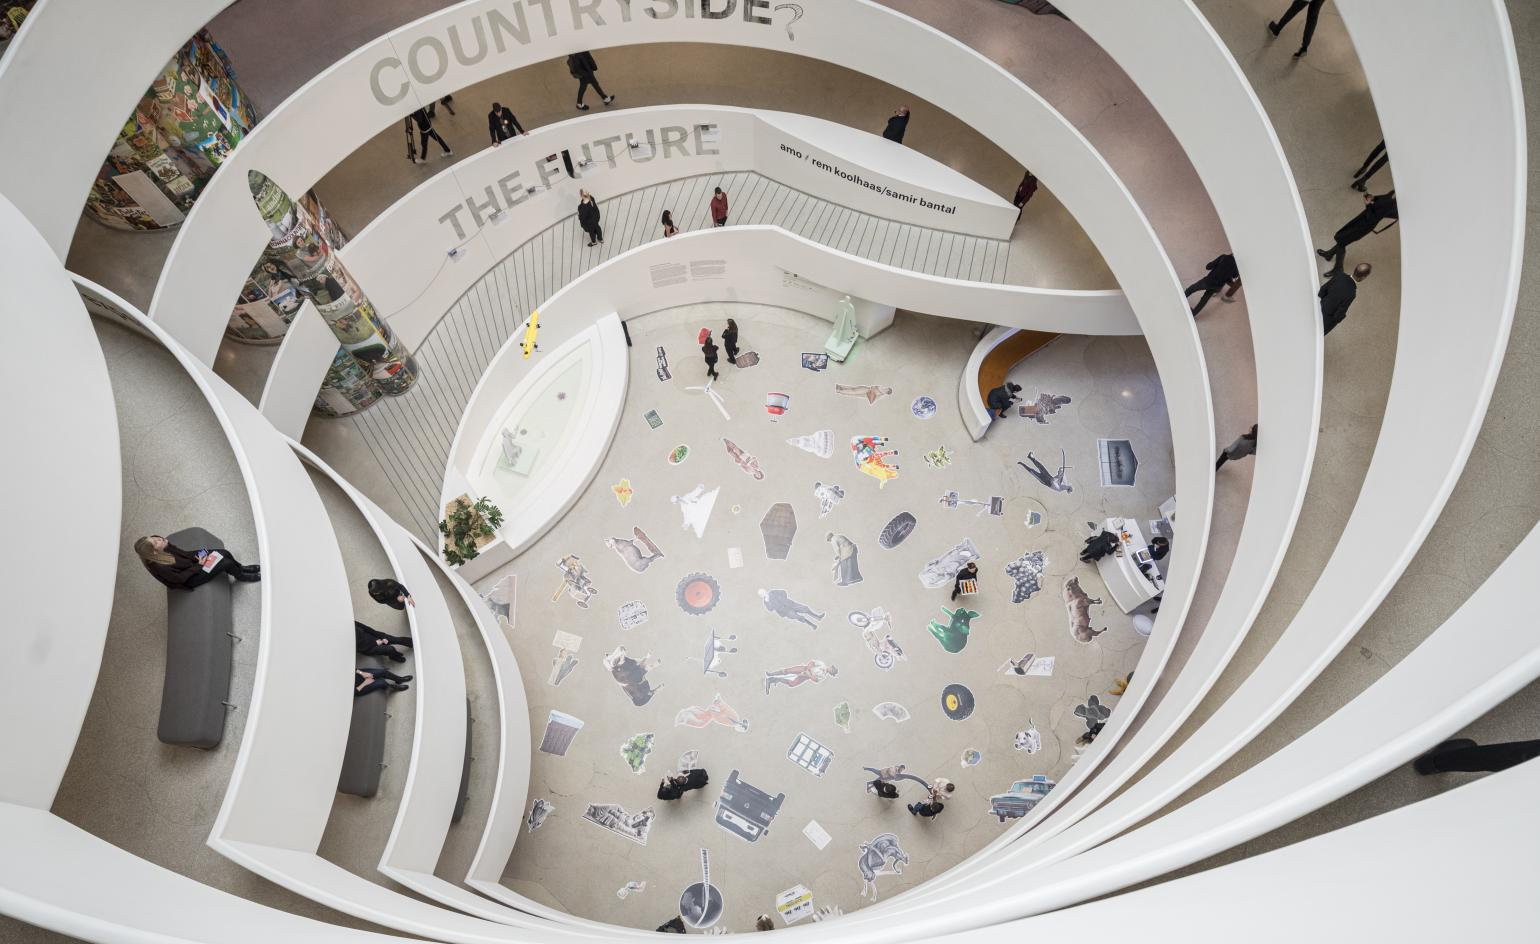 Rem Koolhaas contemplates the countryside at the Guggenheim's latest show in New York